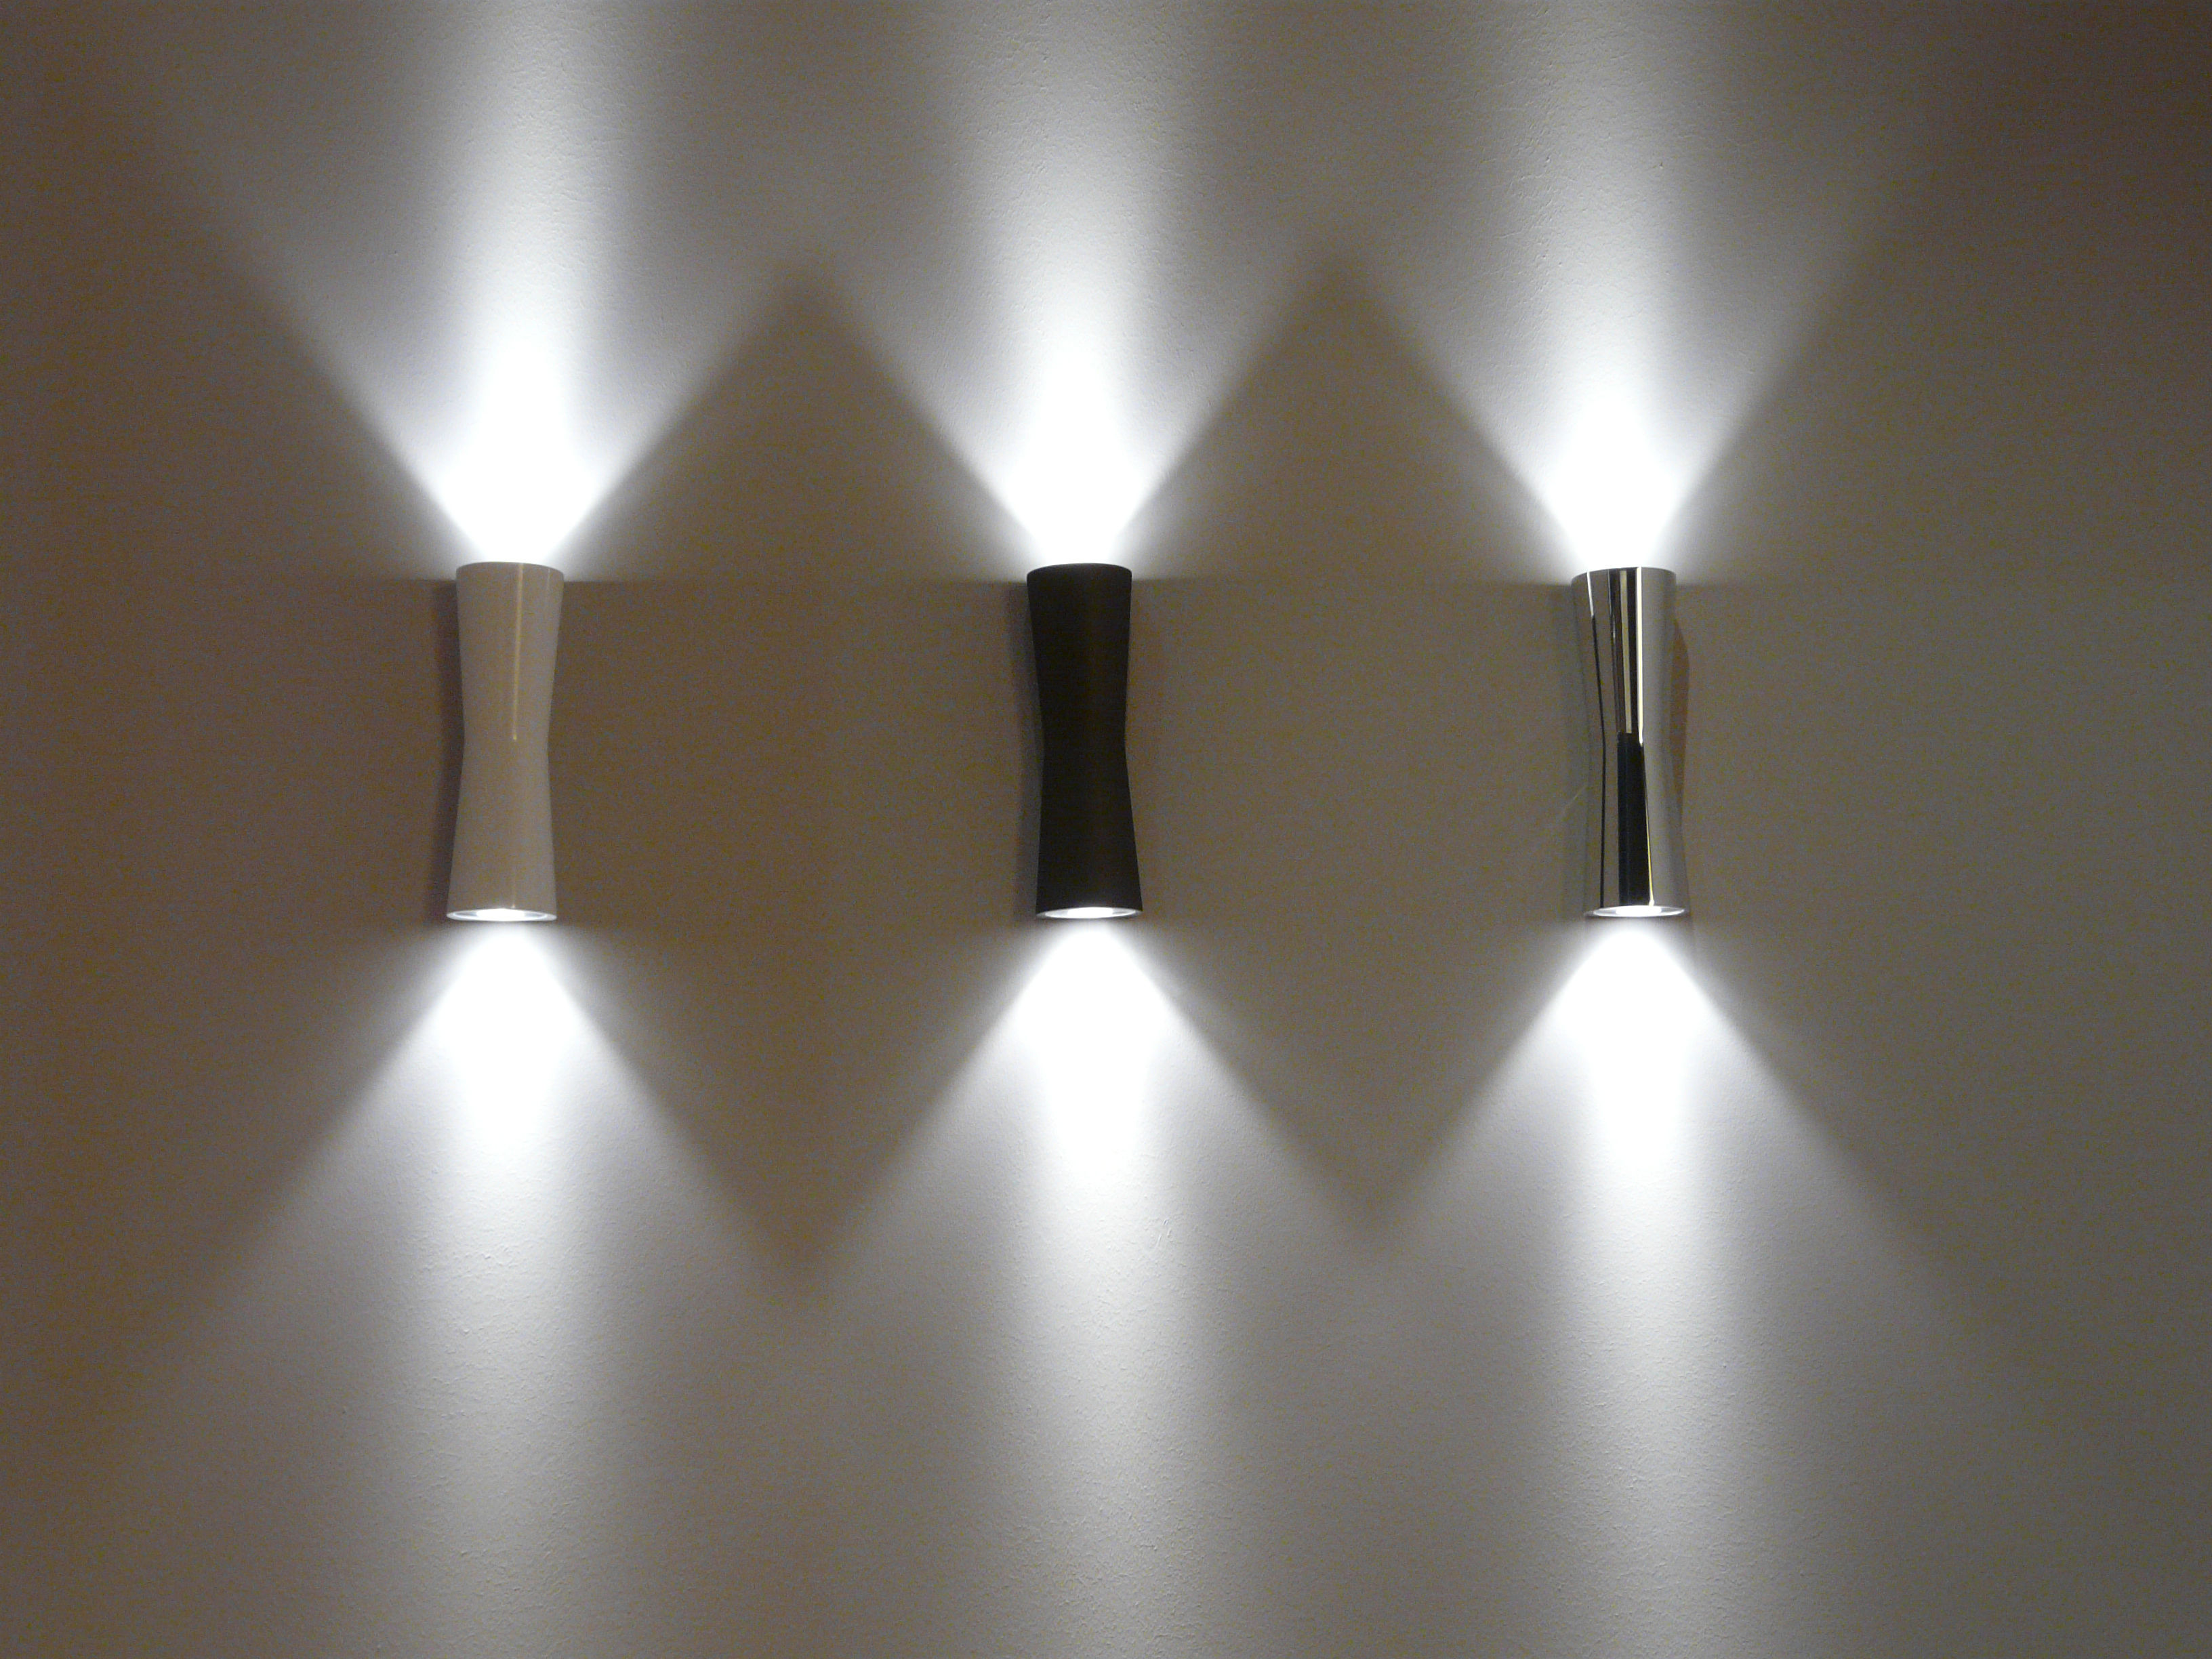 Led wall lights - elevate every room and decorate your living space ...